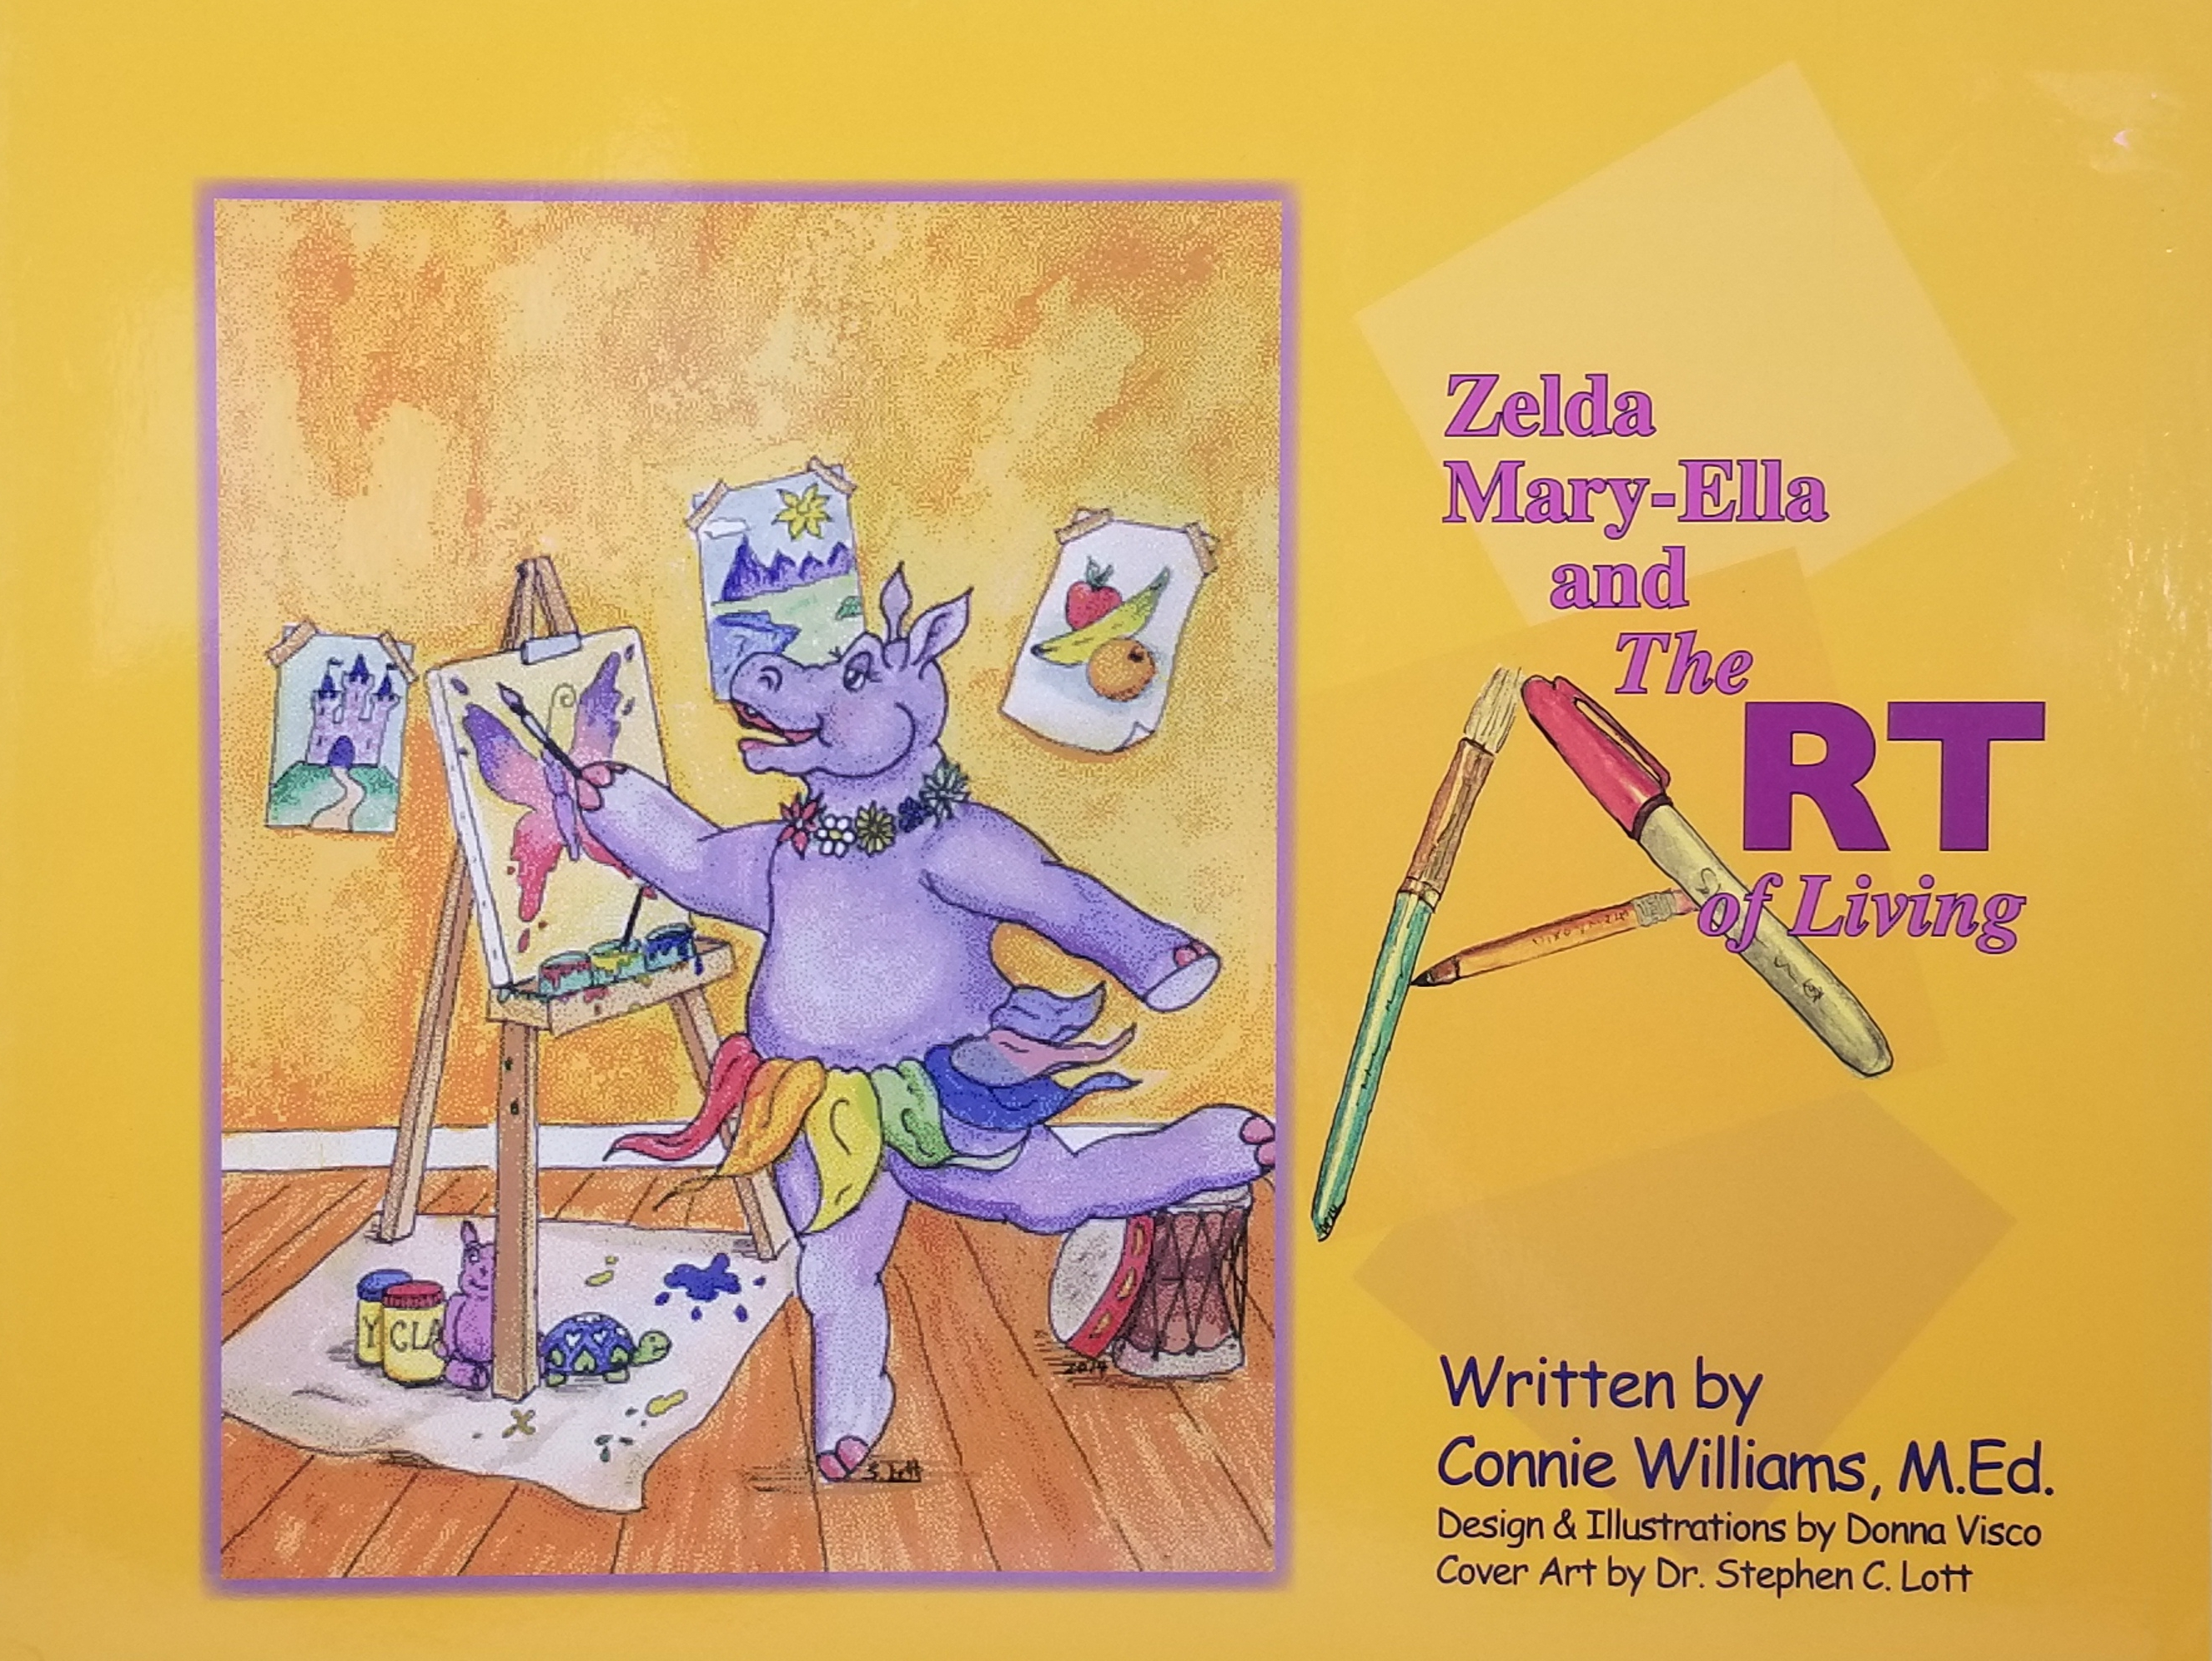 Zelda Mary-Ella and The Art of Living